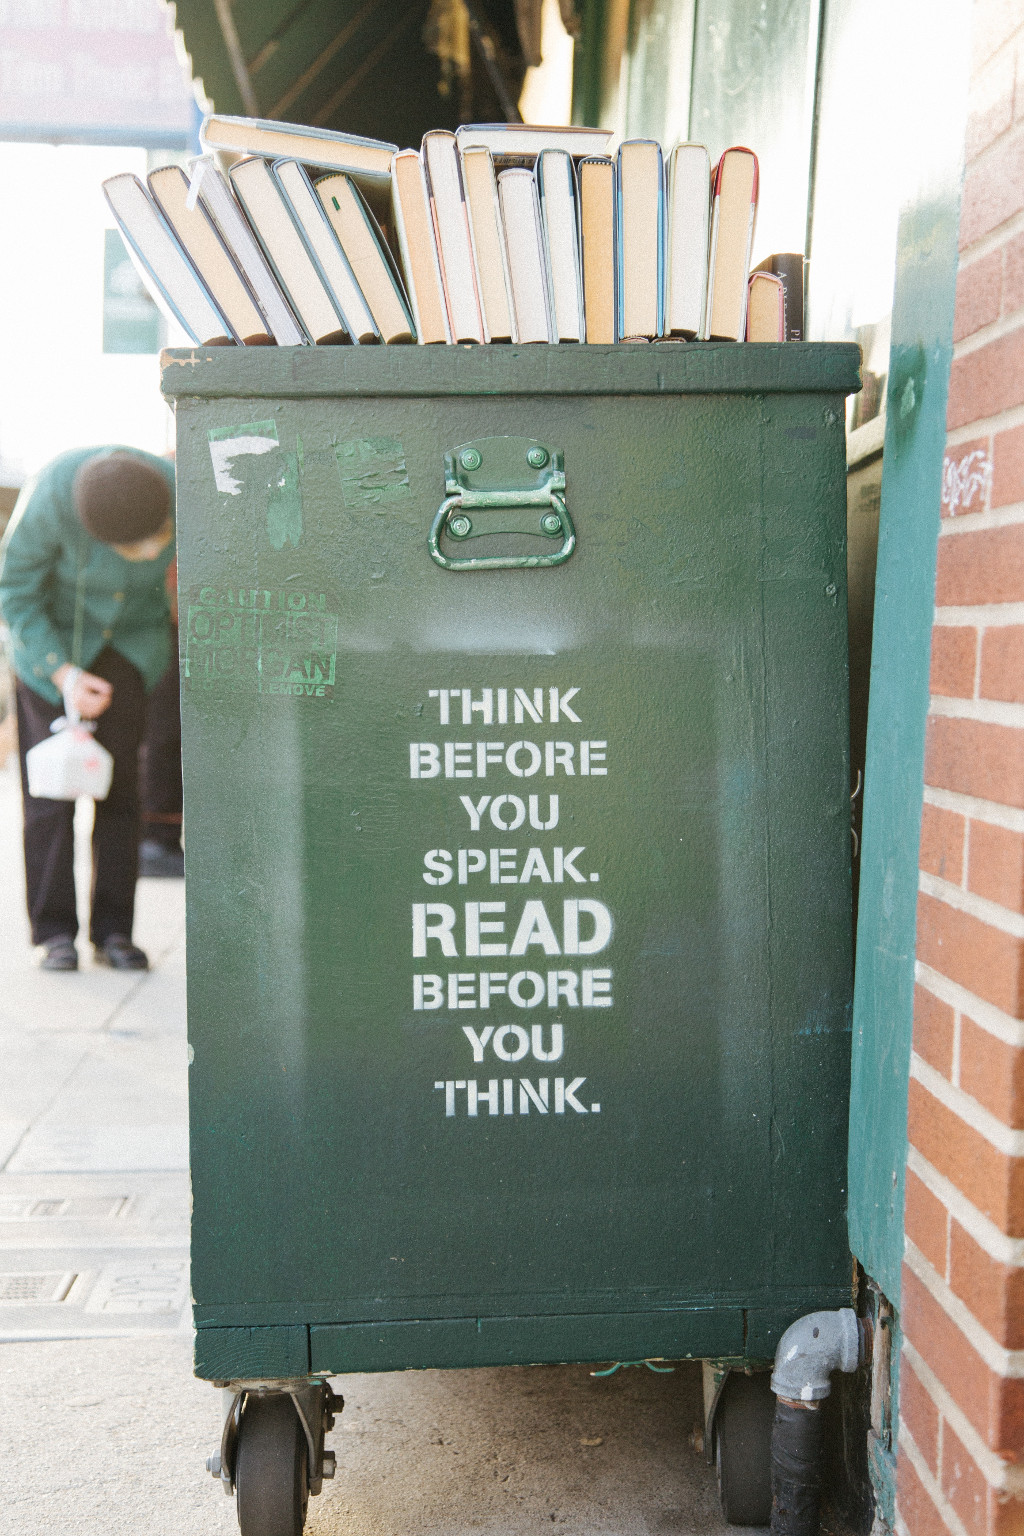 Mülleimer mit Beschriftung: Think before you speak, read before you think